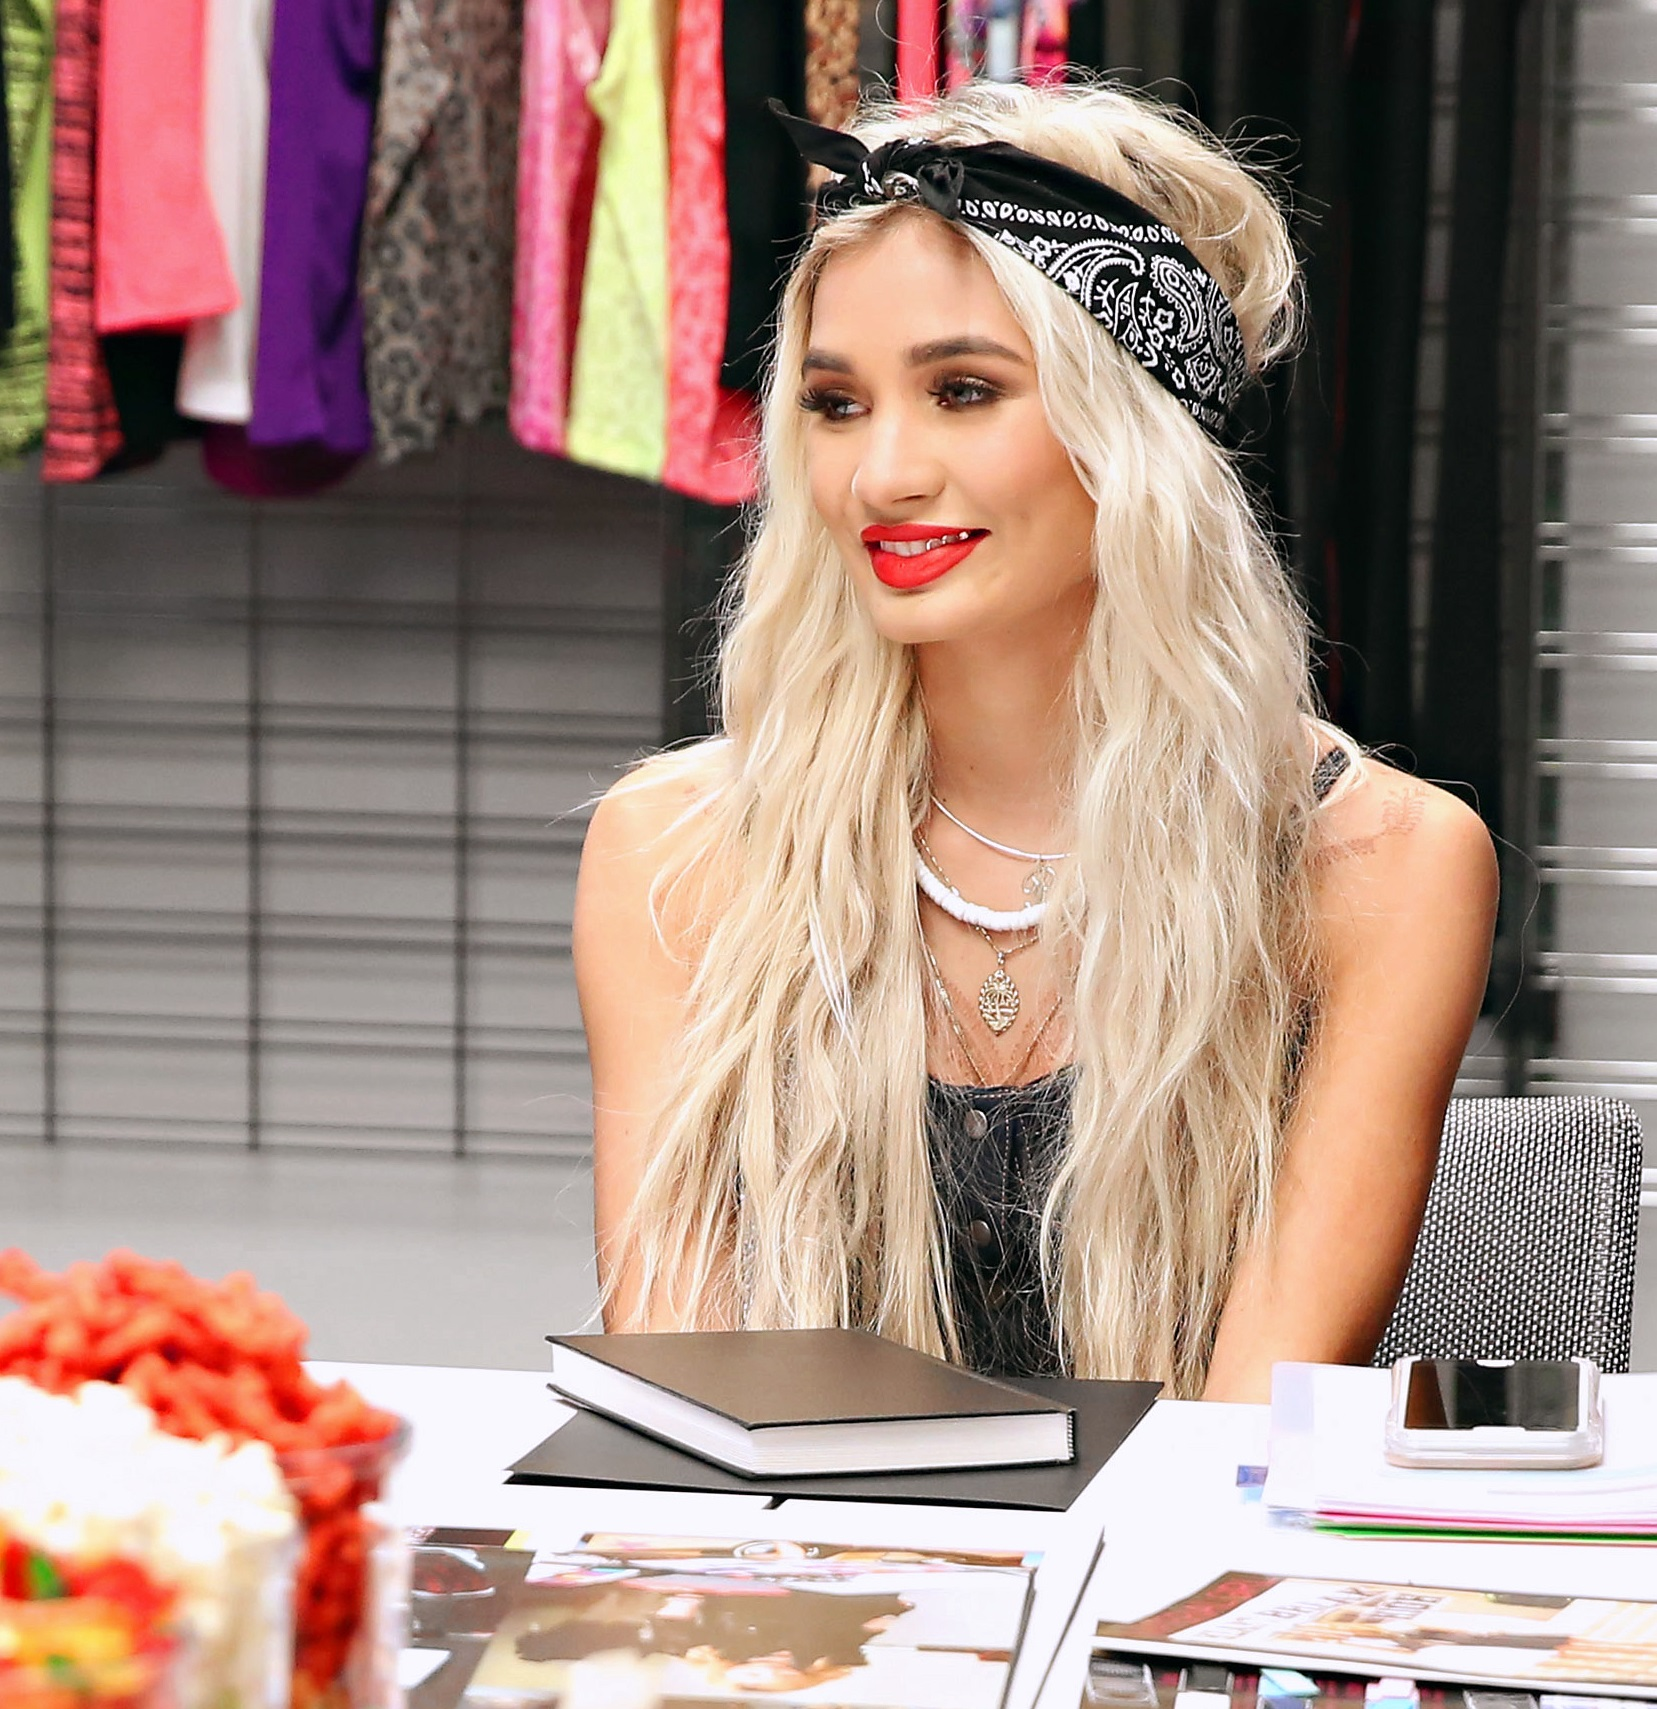 """""""NEW YORK, NEW YORK - APRIL 05: Pia Mia at the Material Girl design meeting on April 5, 2016 in New York City. (Photo by Cindy Ord/Getty Images)"""""""